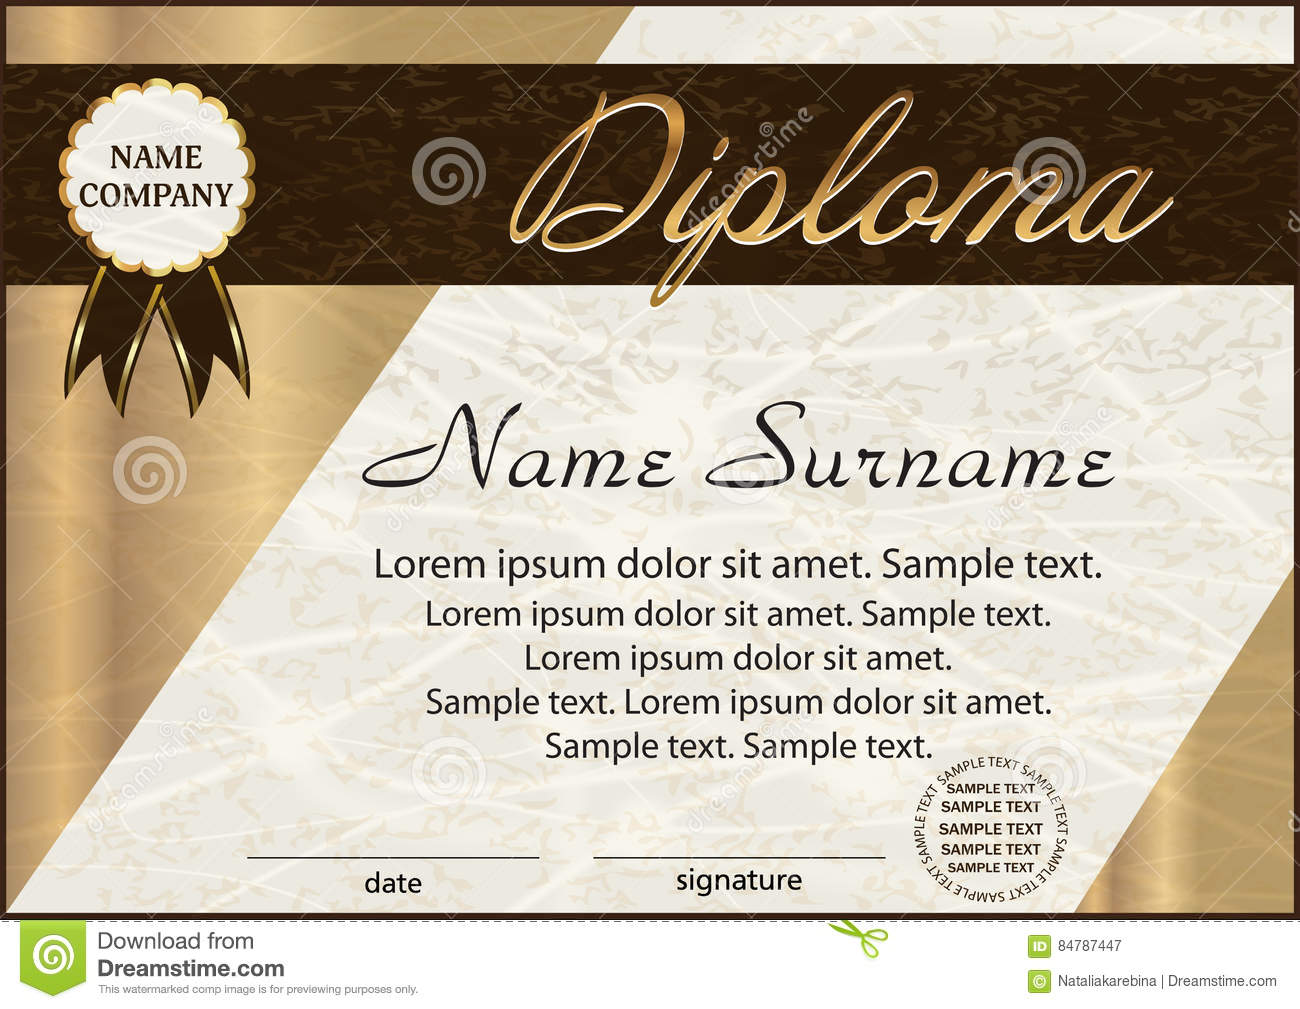 Diploma or certificate template elegant background winning the diploma or certificate template elegant background winning the yelopaper Choice Image